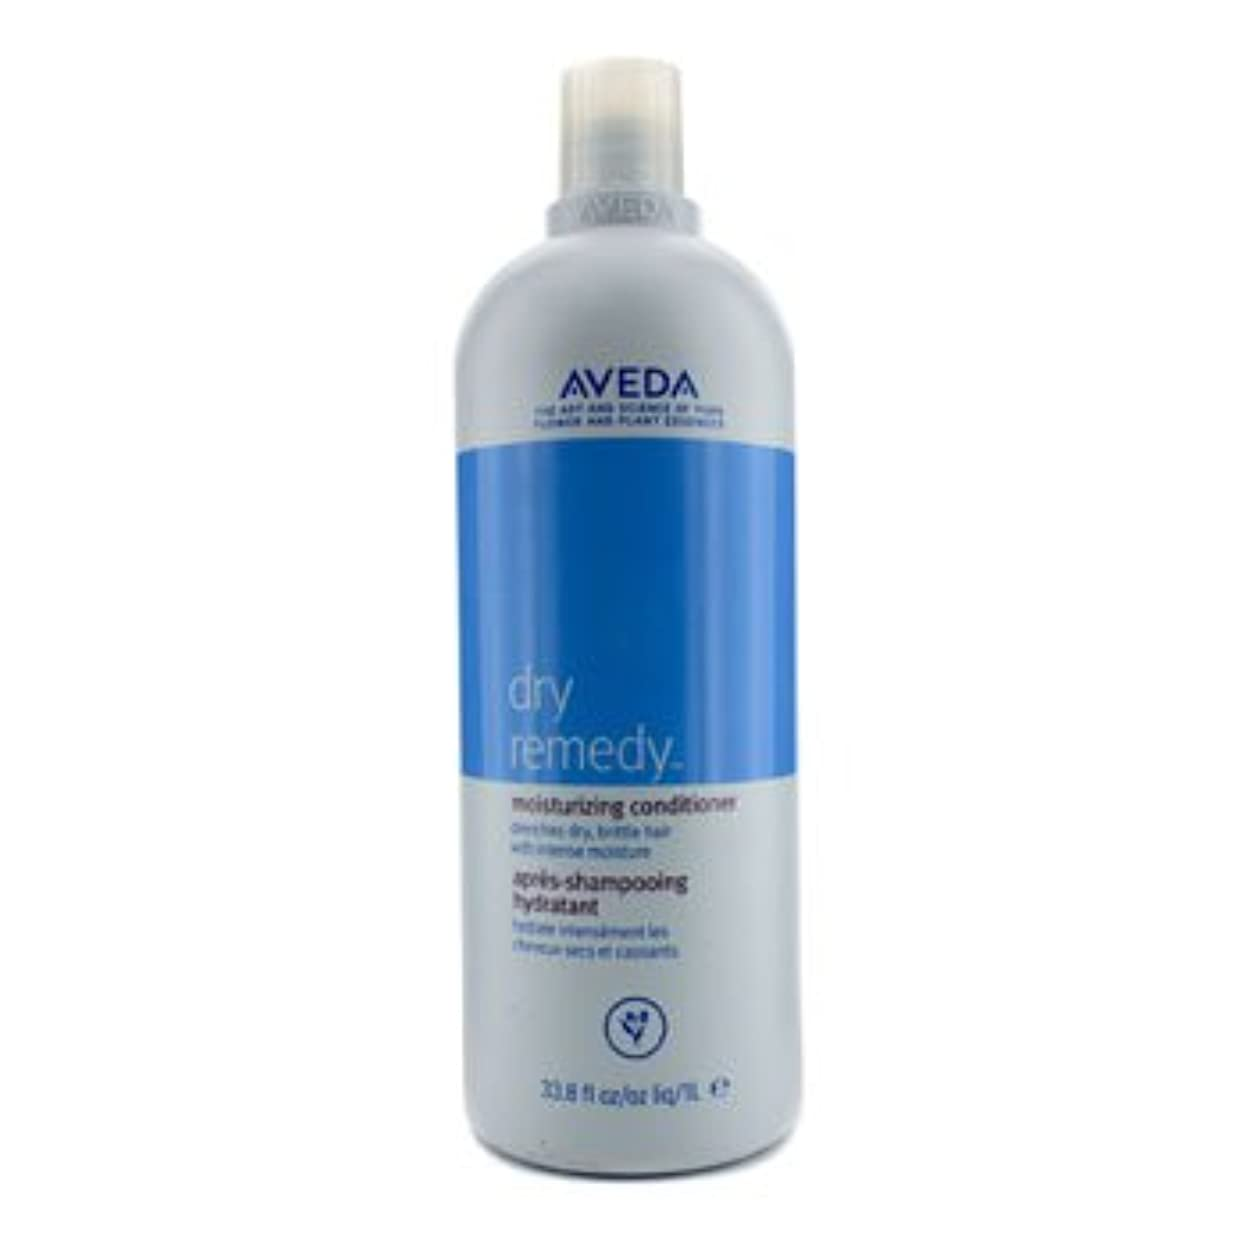 [Aveda] Dry Remedy Moisturizing Conditioner - For Drenches Dry Brittle Hair (New Packaging) 1000ml/33.8oz